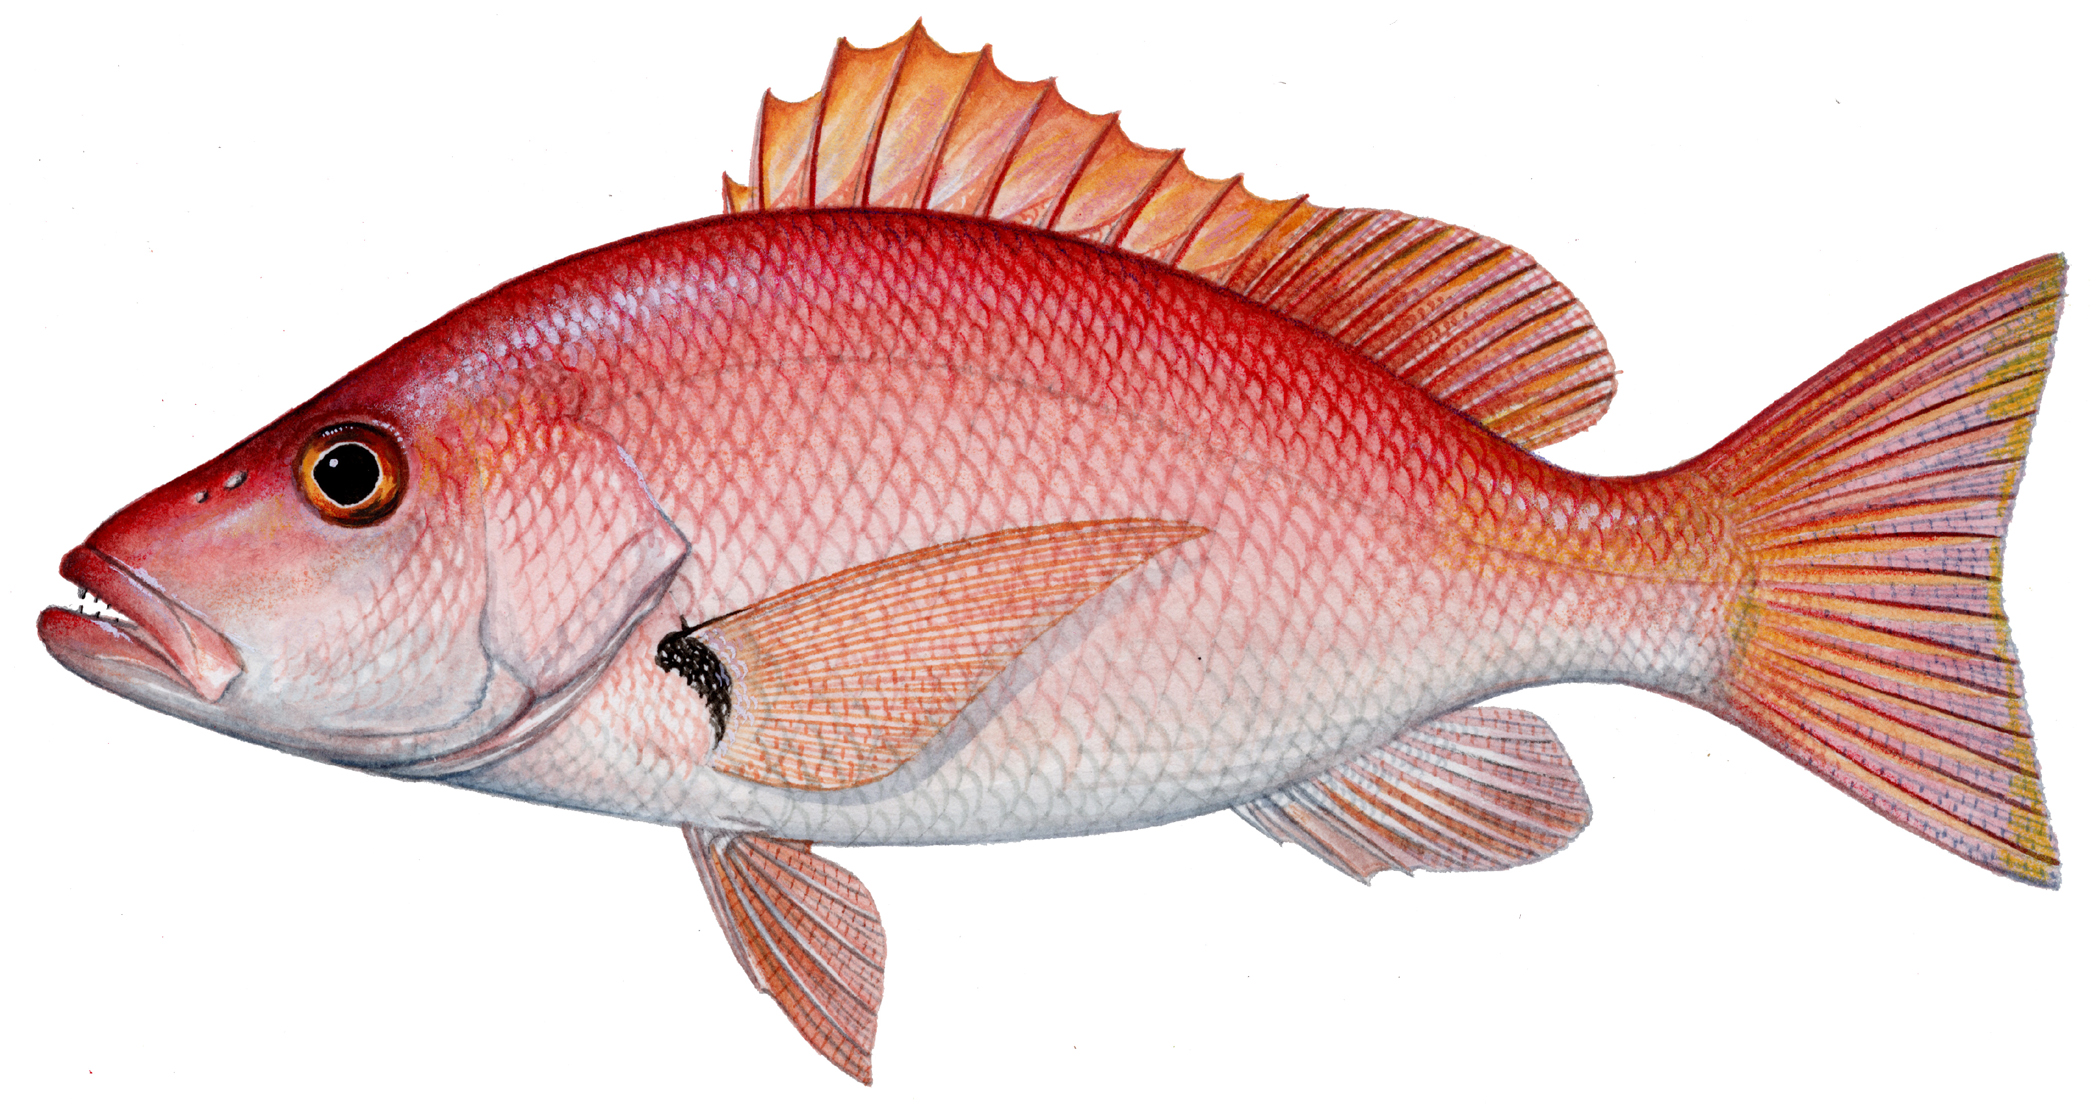 10 days to fish for snapper in federal waters the post for Snapper fish florida